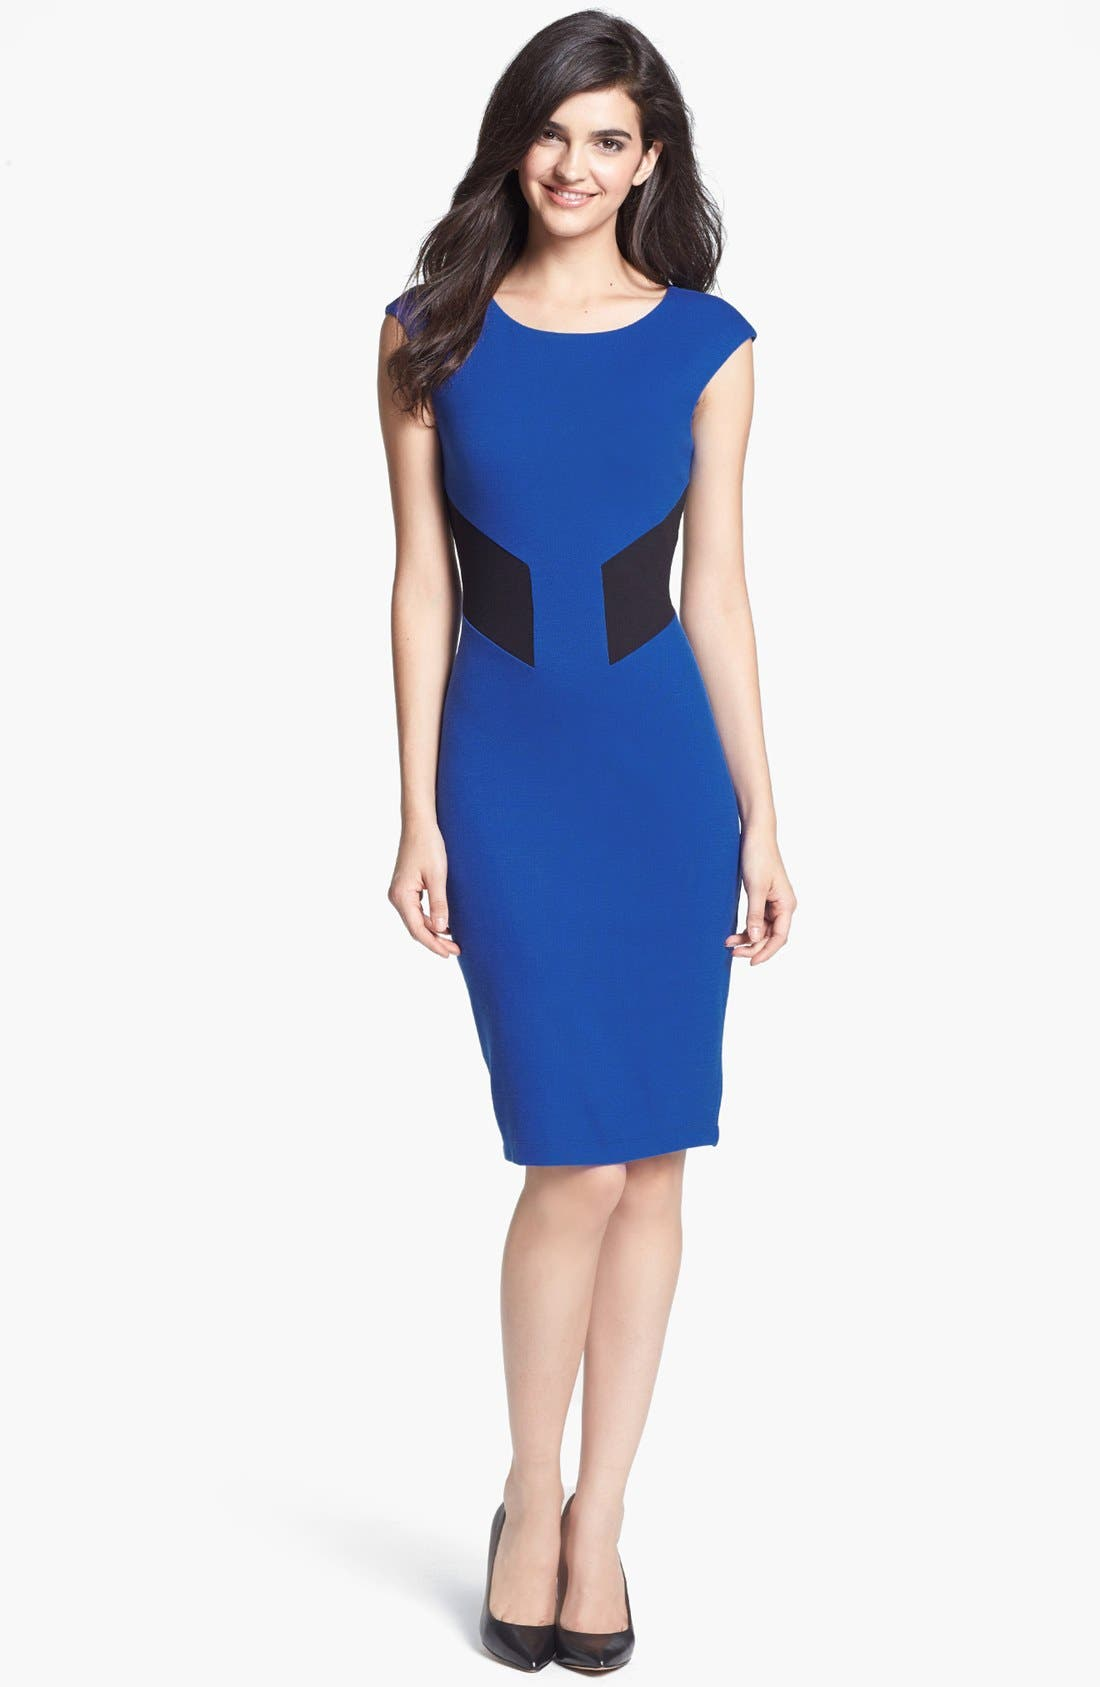 Alternate Image 1 Selected - B44 Dressed by Bailey 44 'Biotech' Back Cutout Colorblock Sheath Dress